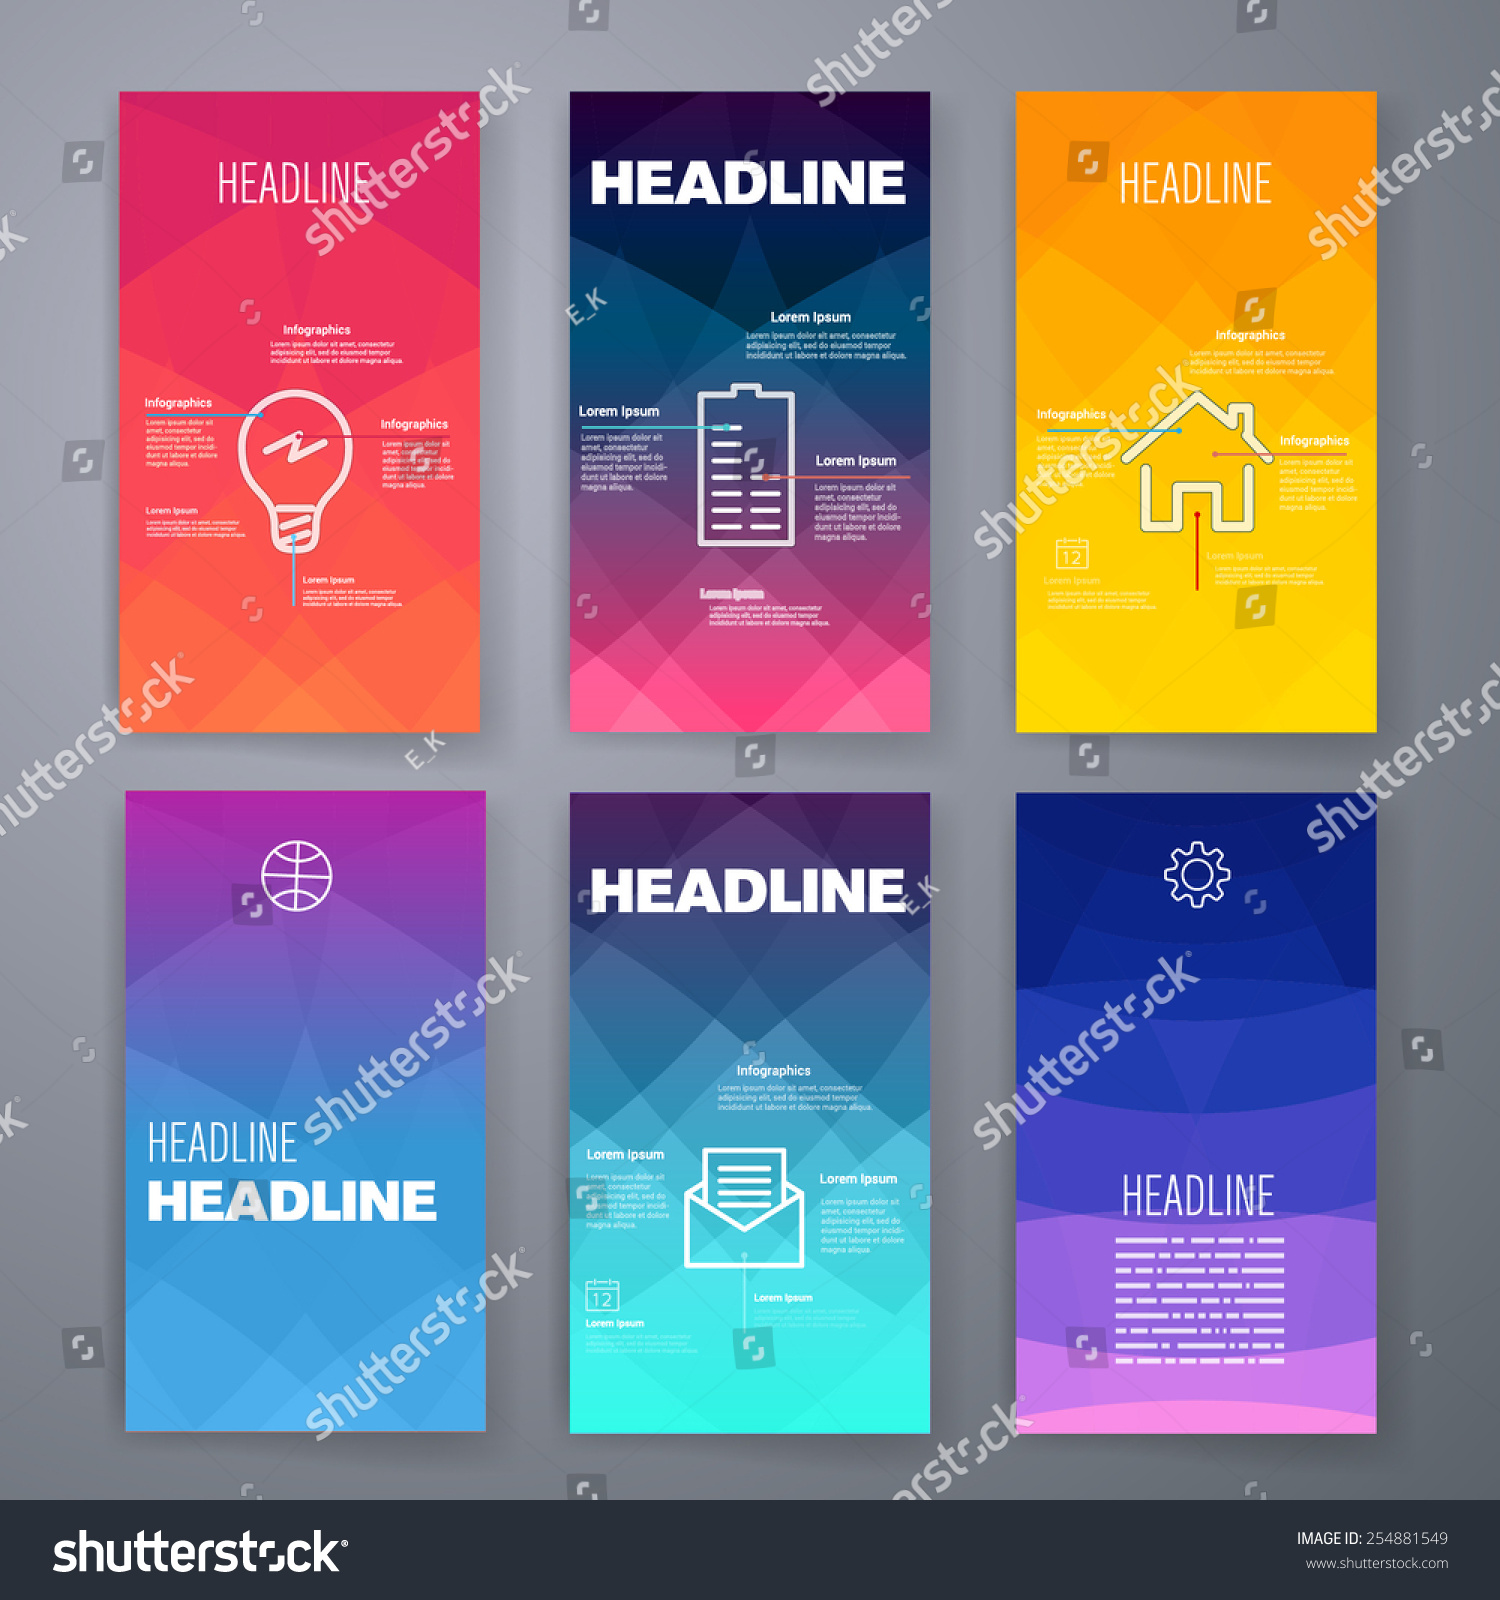 Lovely 1 Inch Hexagon Template Small 1099 Template Shaped 16 Birthday Invitation Templates 2014 Calendar Template Free Youthful 2014 Diary Template Coloured2014 Monthly Calendar Templates Templates Design Set Web Mail Brochures Stock Vector 254881549 ..